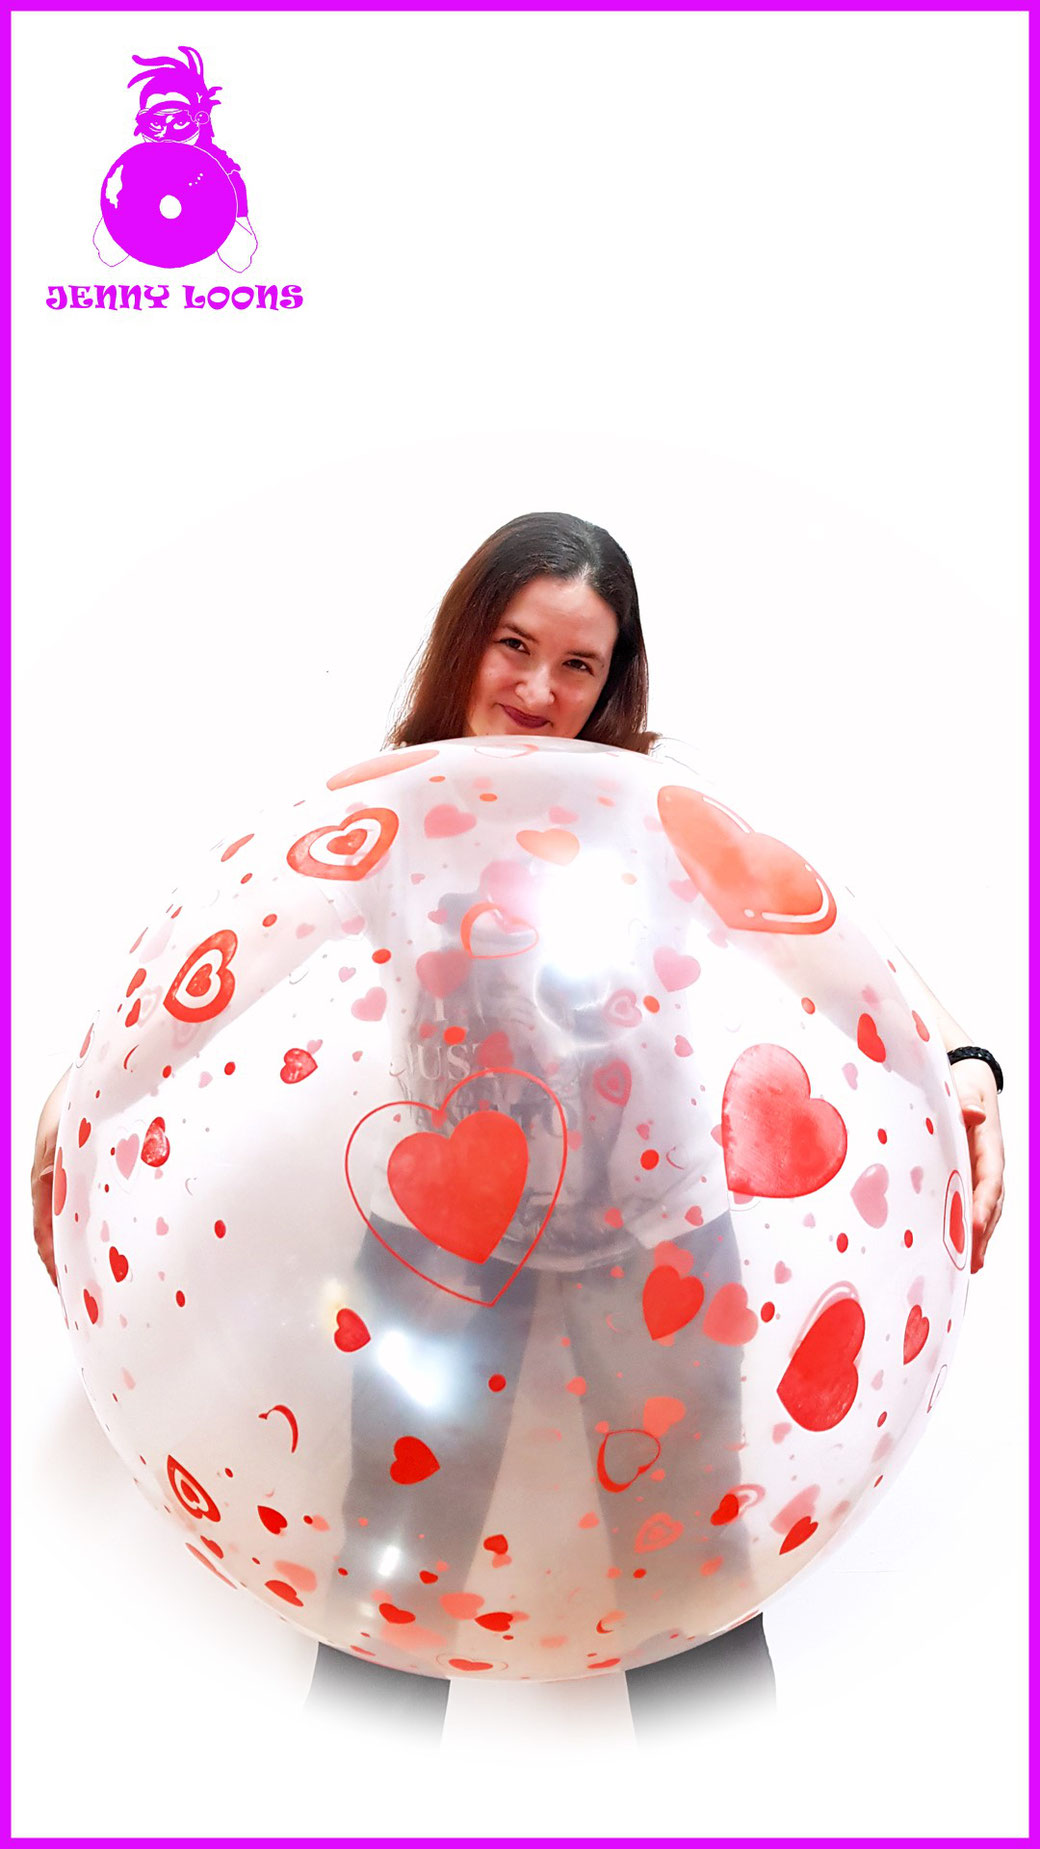 JENNY LOONS CATTEX 32inch 81cm Riesenballon Giant Balloon rote Herzen red hearts